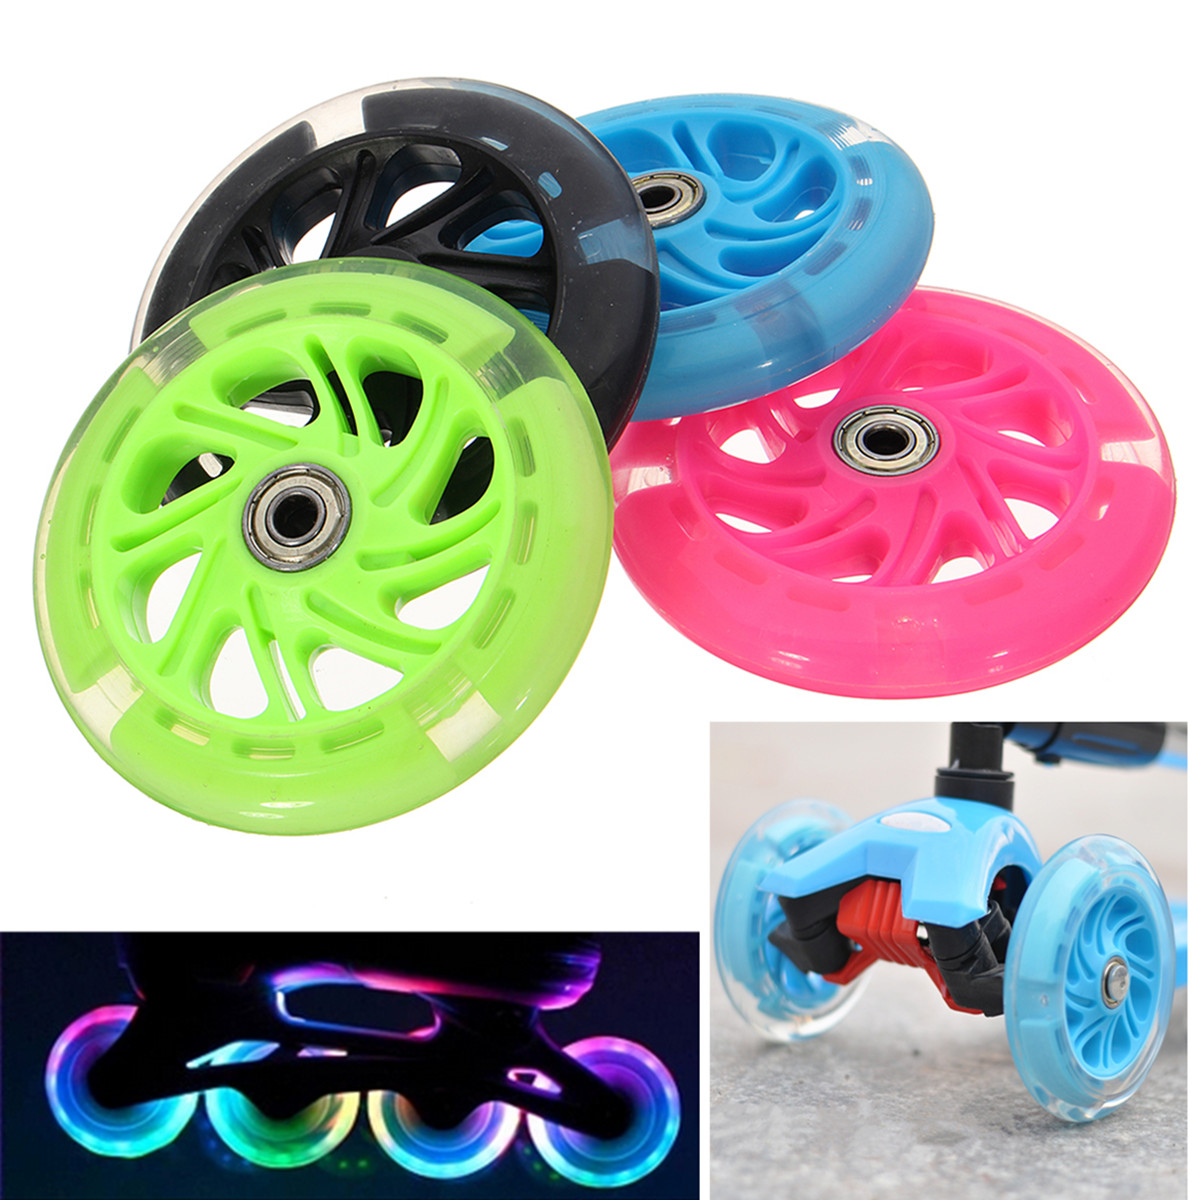 120mm LED Flash Light Up Scooter Wheel Flash Wheel for Scooter Inline Skates 2 ABED-7 Bearing